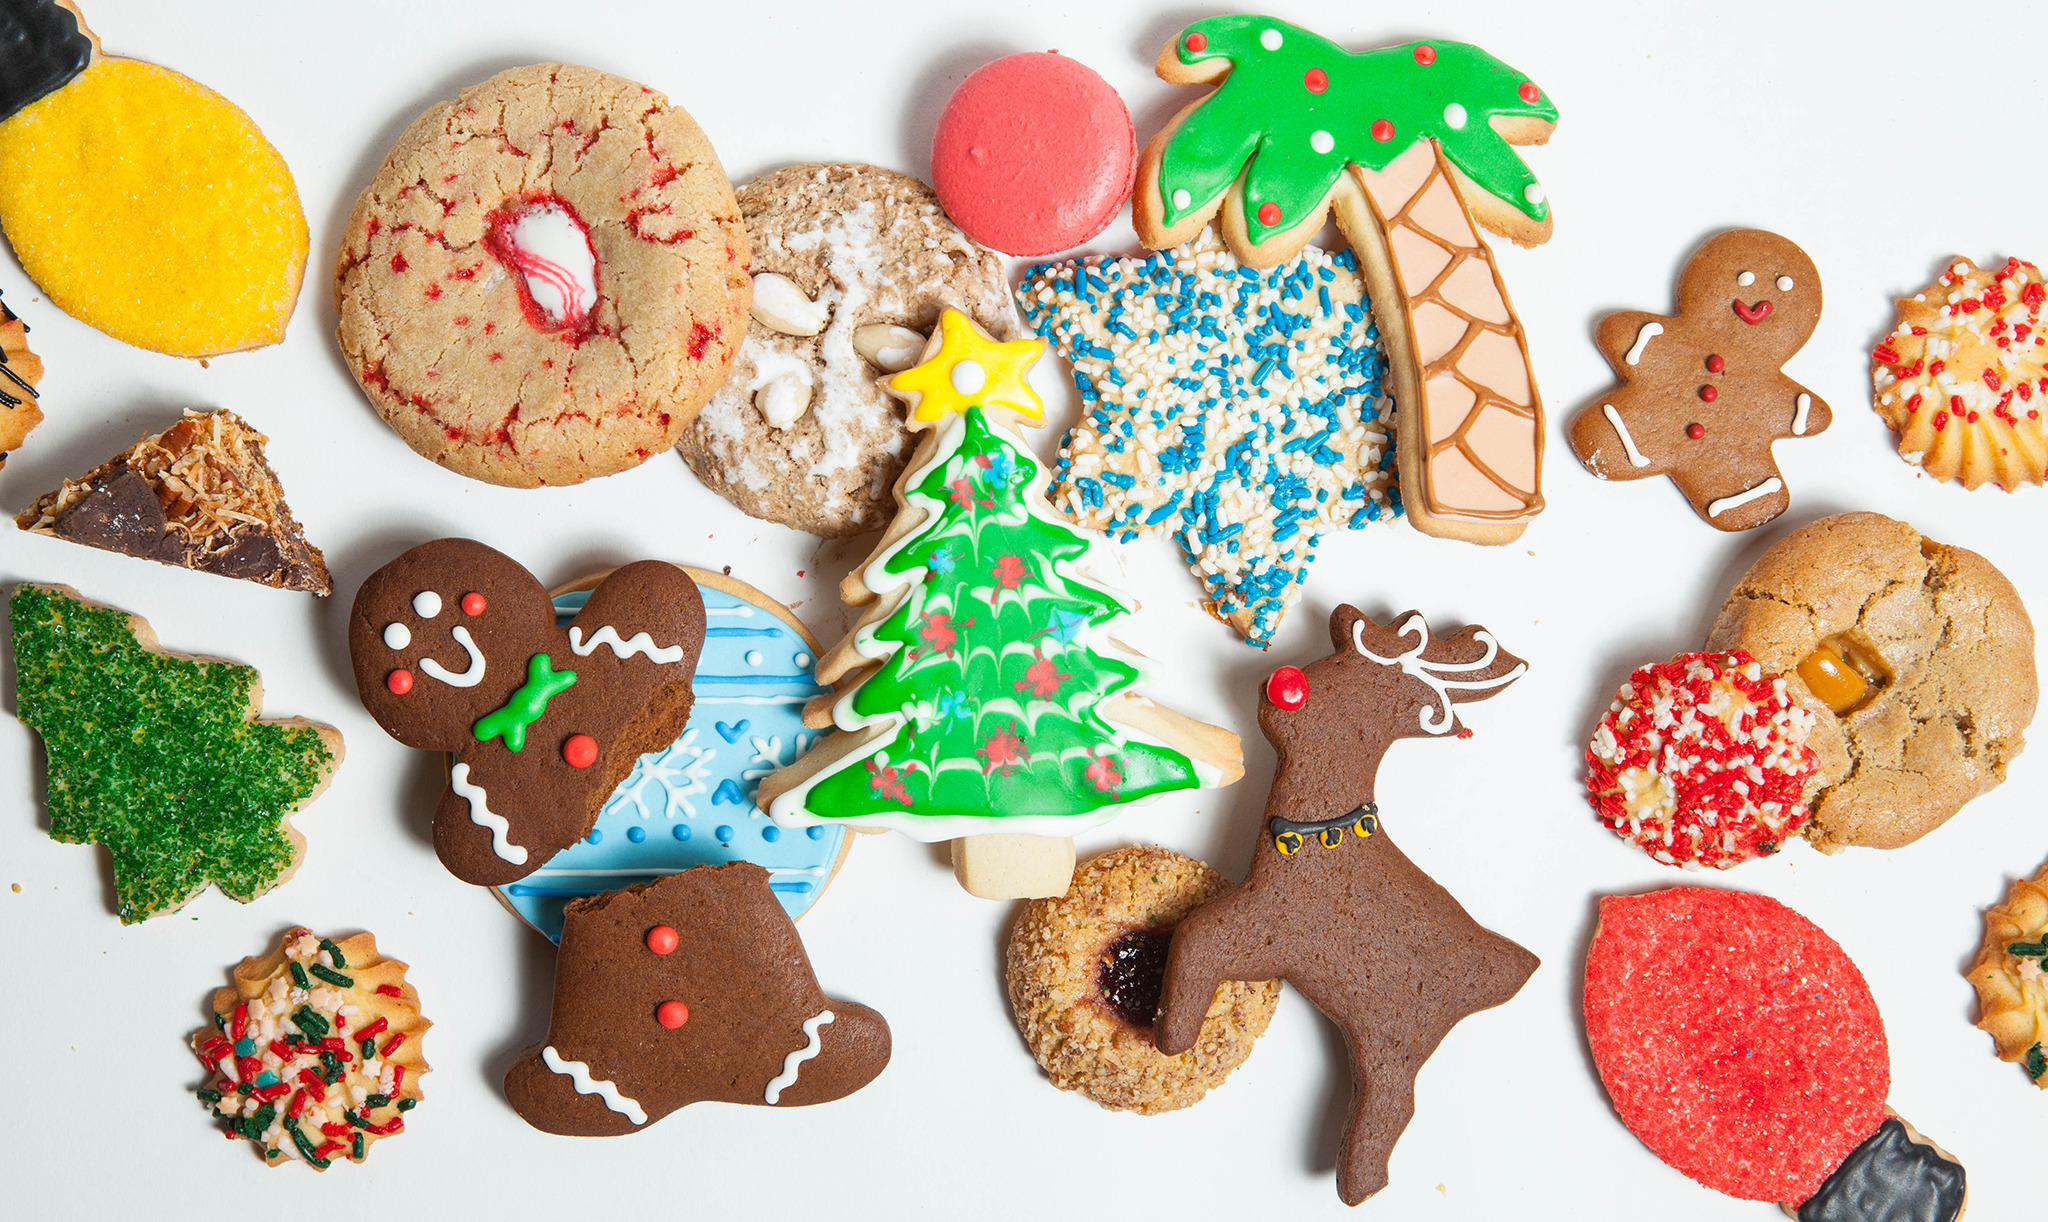 Where to find the best Christmas cookies